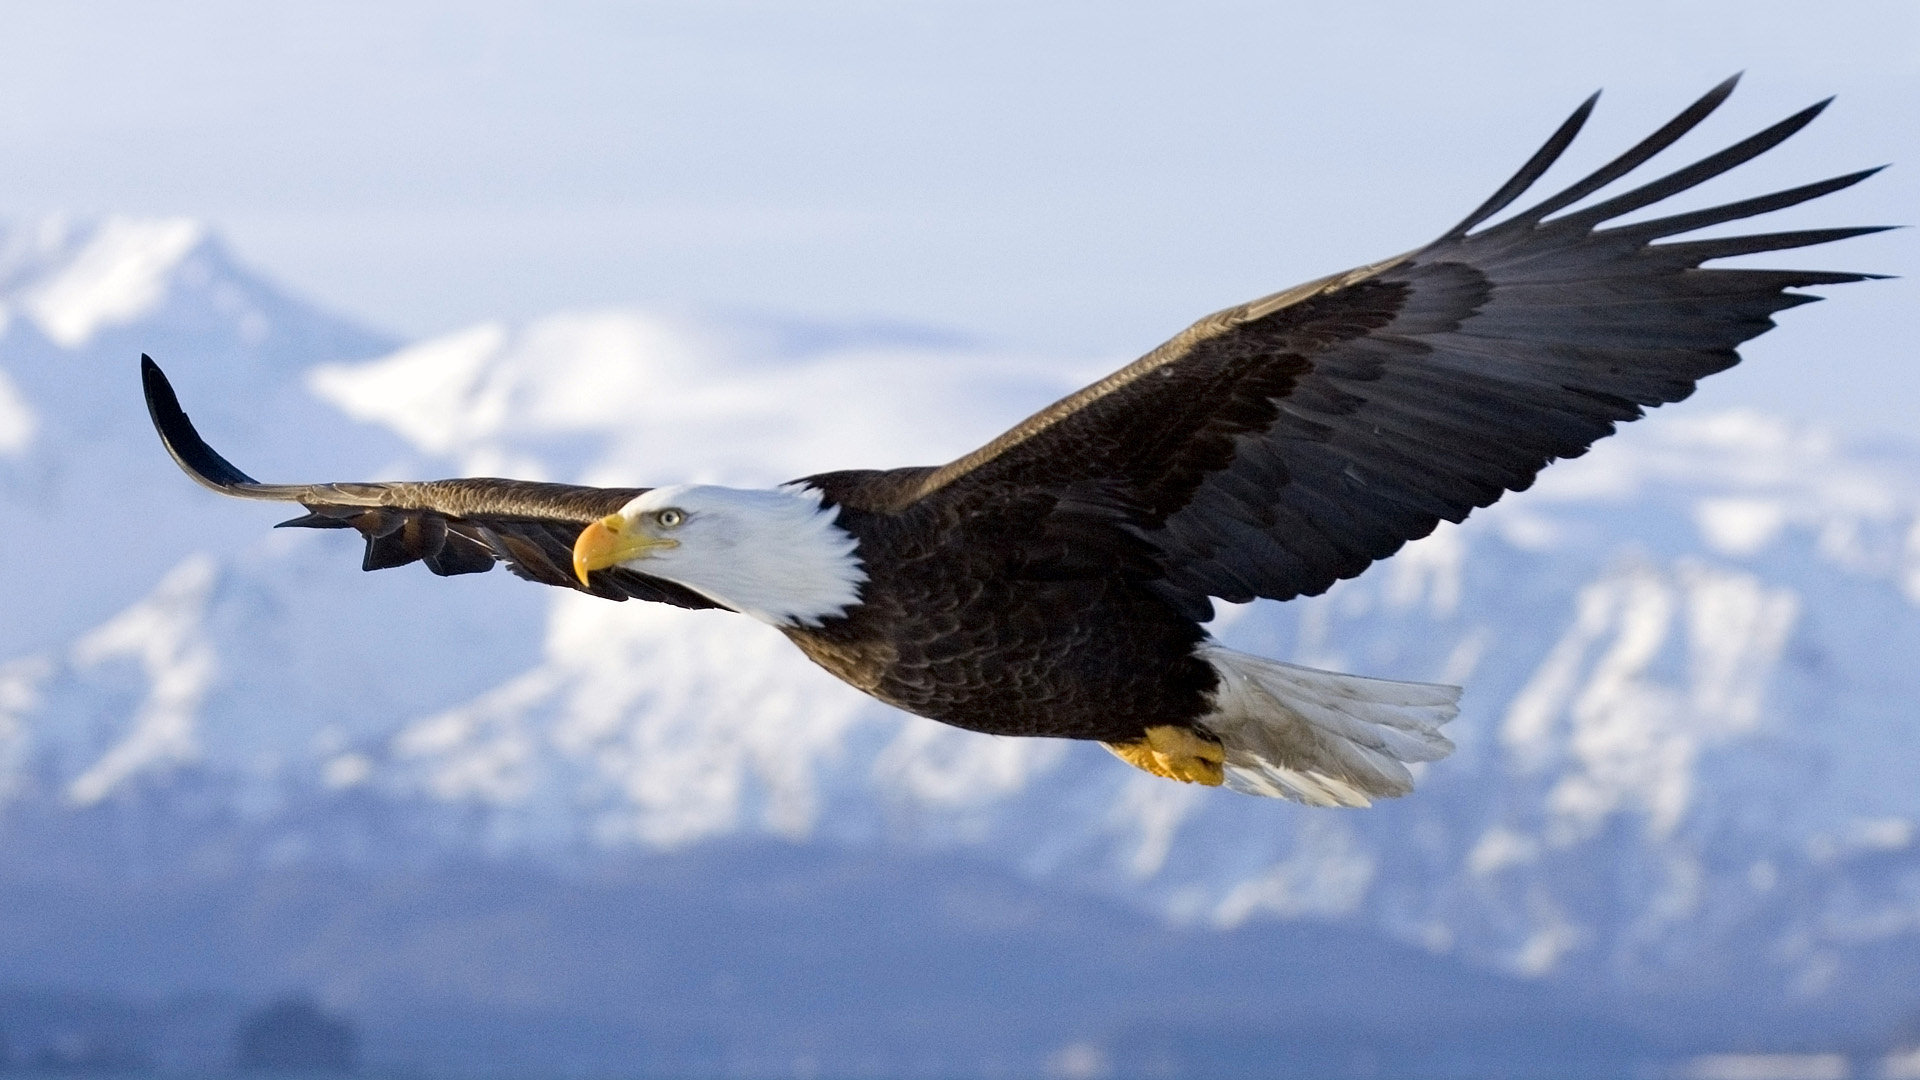 Eagle In Flight Computer Wallpapers Desktop Backgrounds 1920x1080 1920x1080